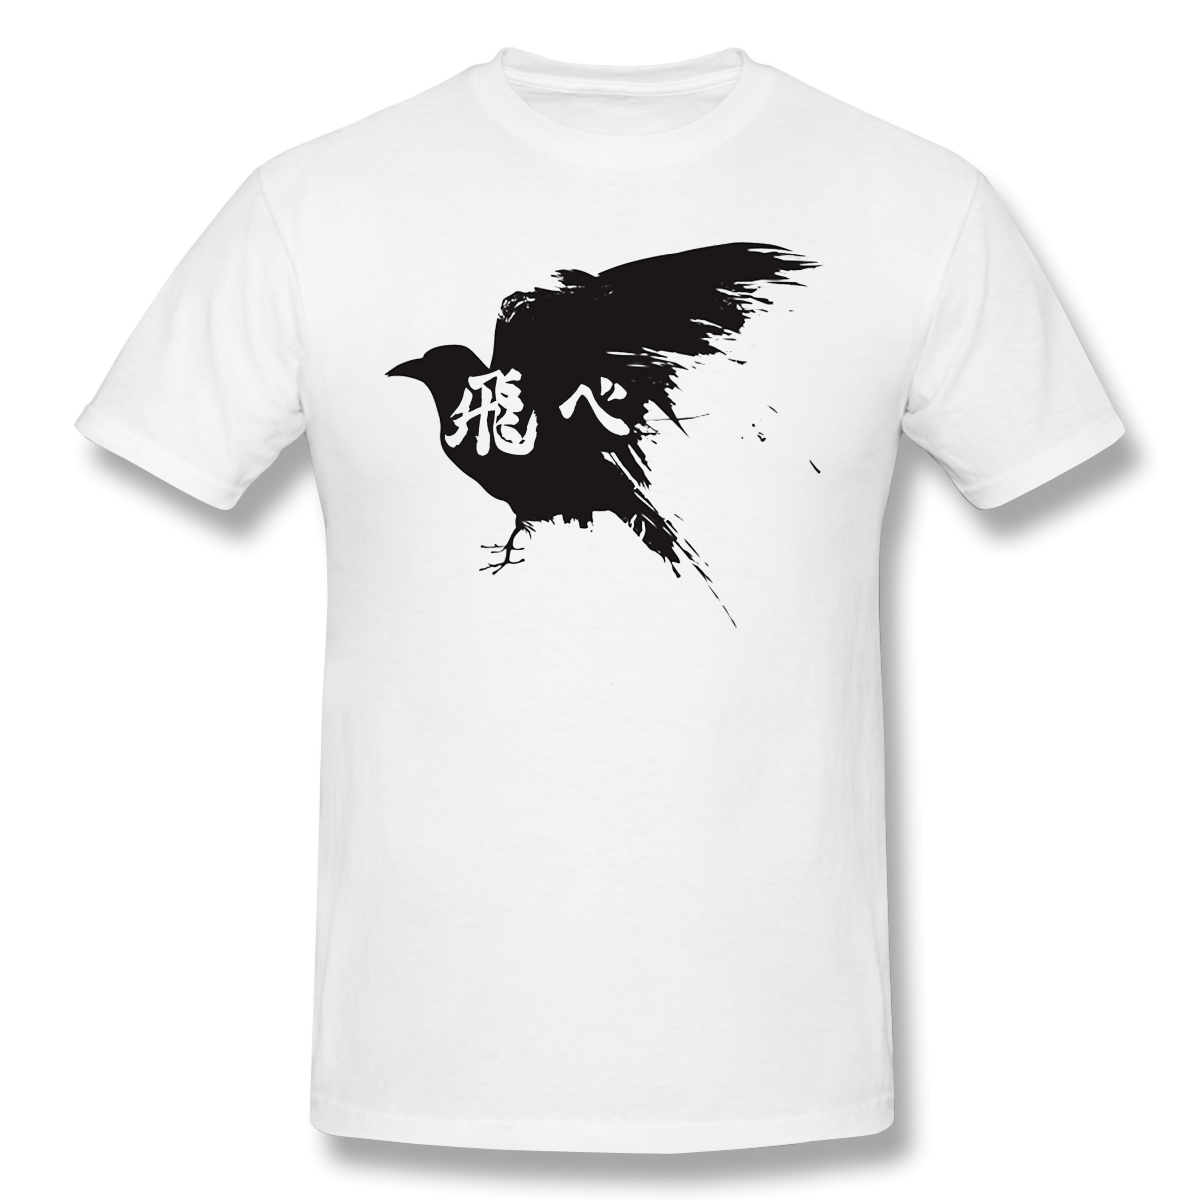 Haikyuu japanese sport anime T-Shirts for Men Crow Fly Funny Crewneck Cotton Graphic T Shirt off white Short Sleeve Tees Printed image